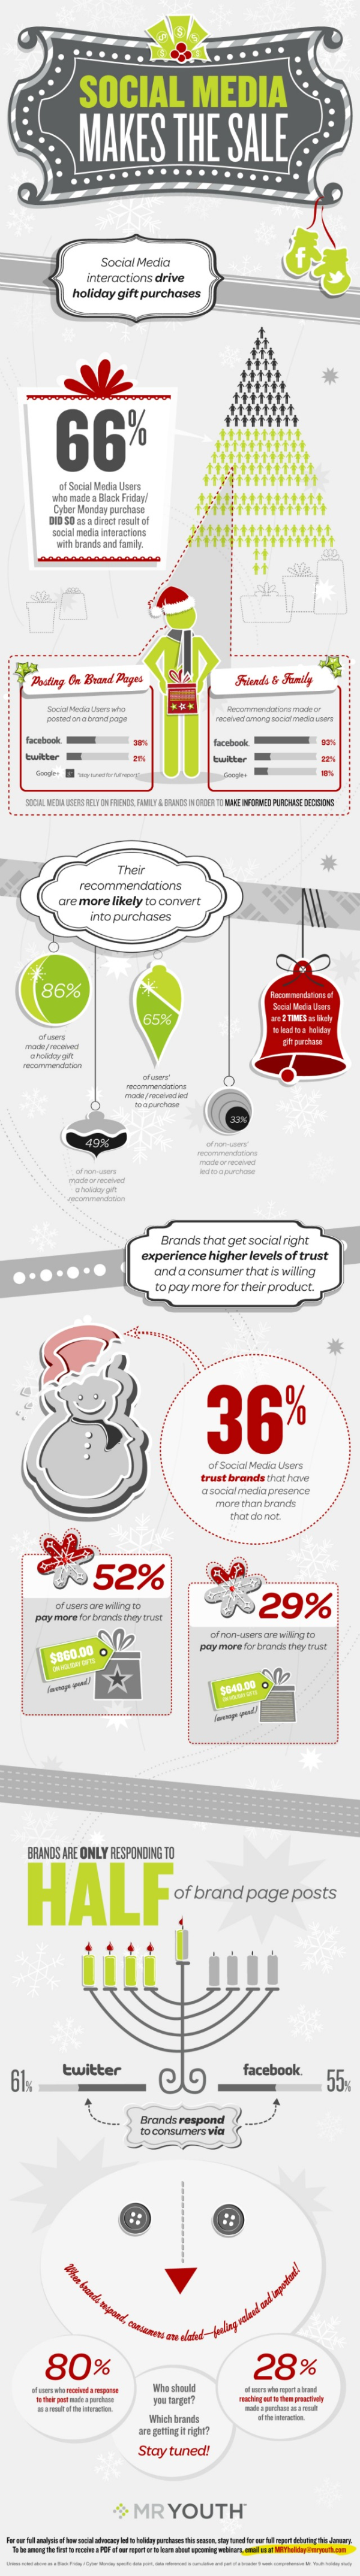 Holiday-Infographic-Social-Media